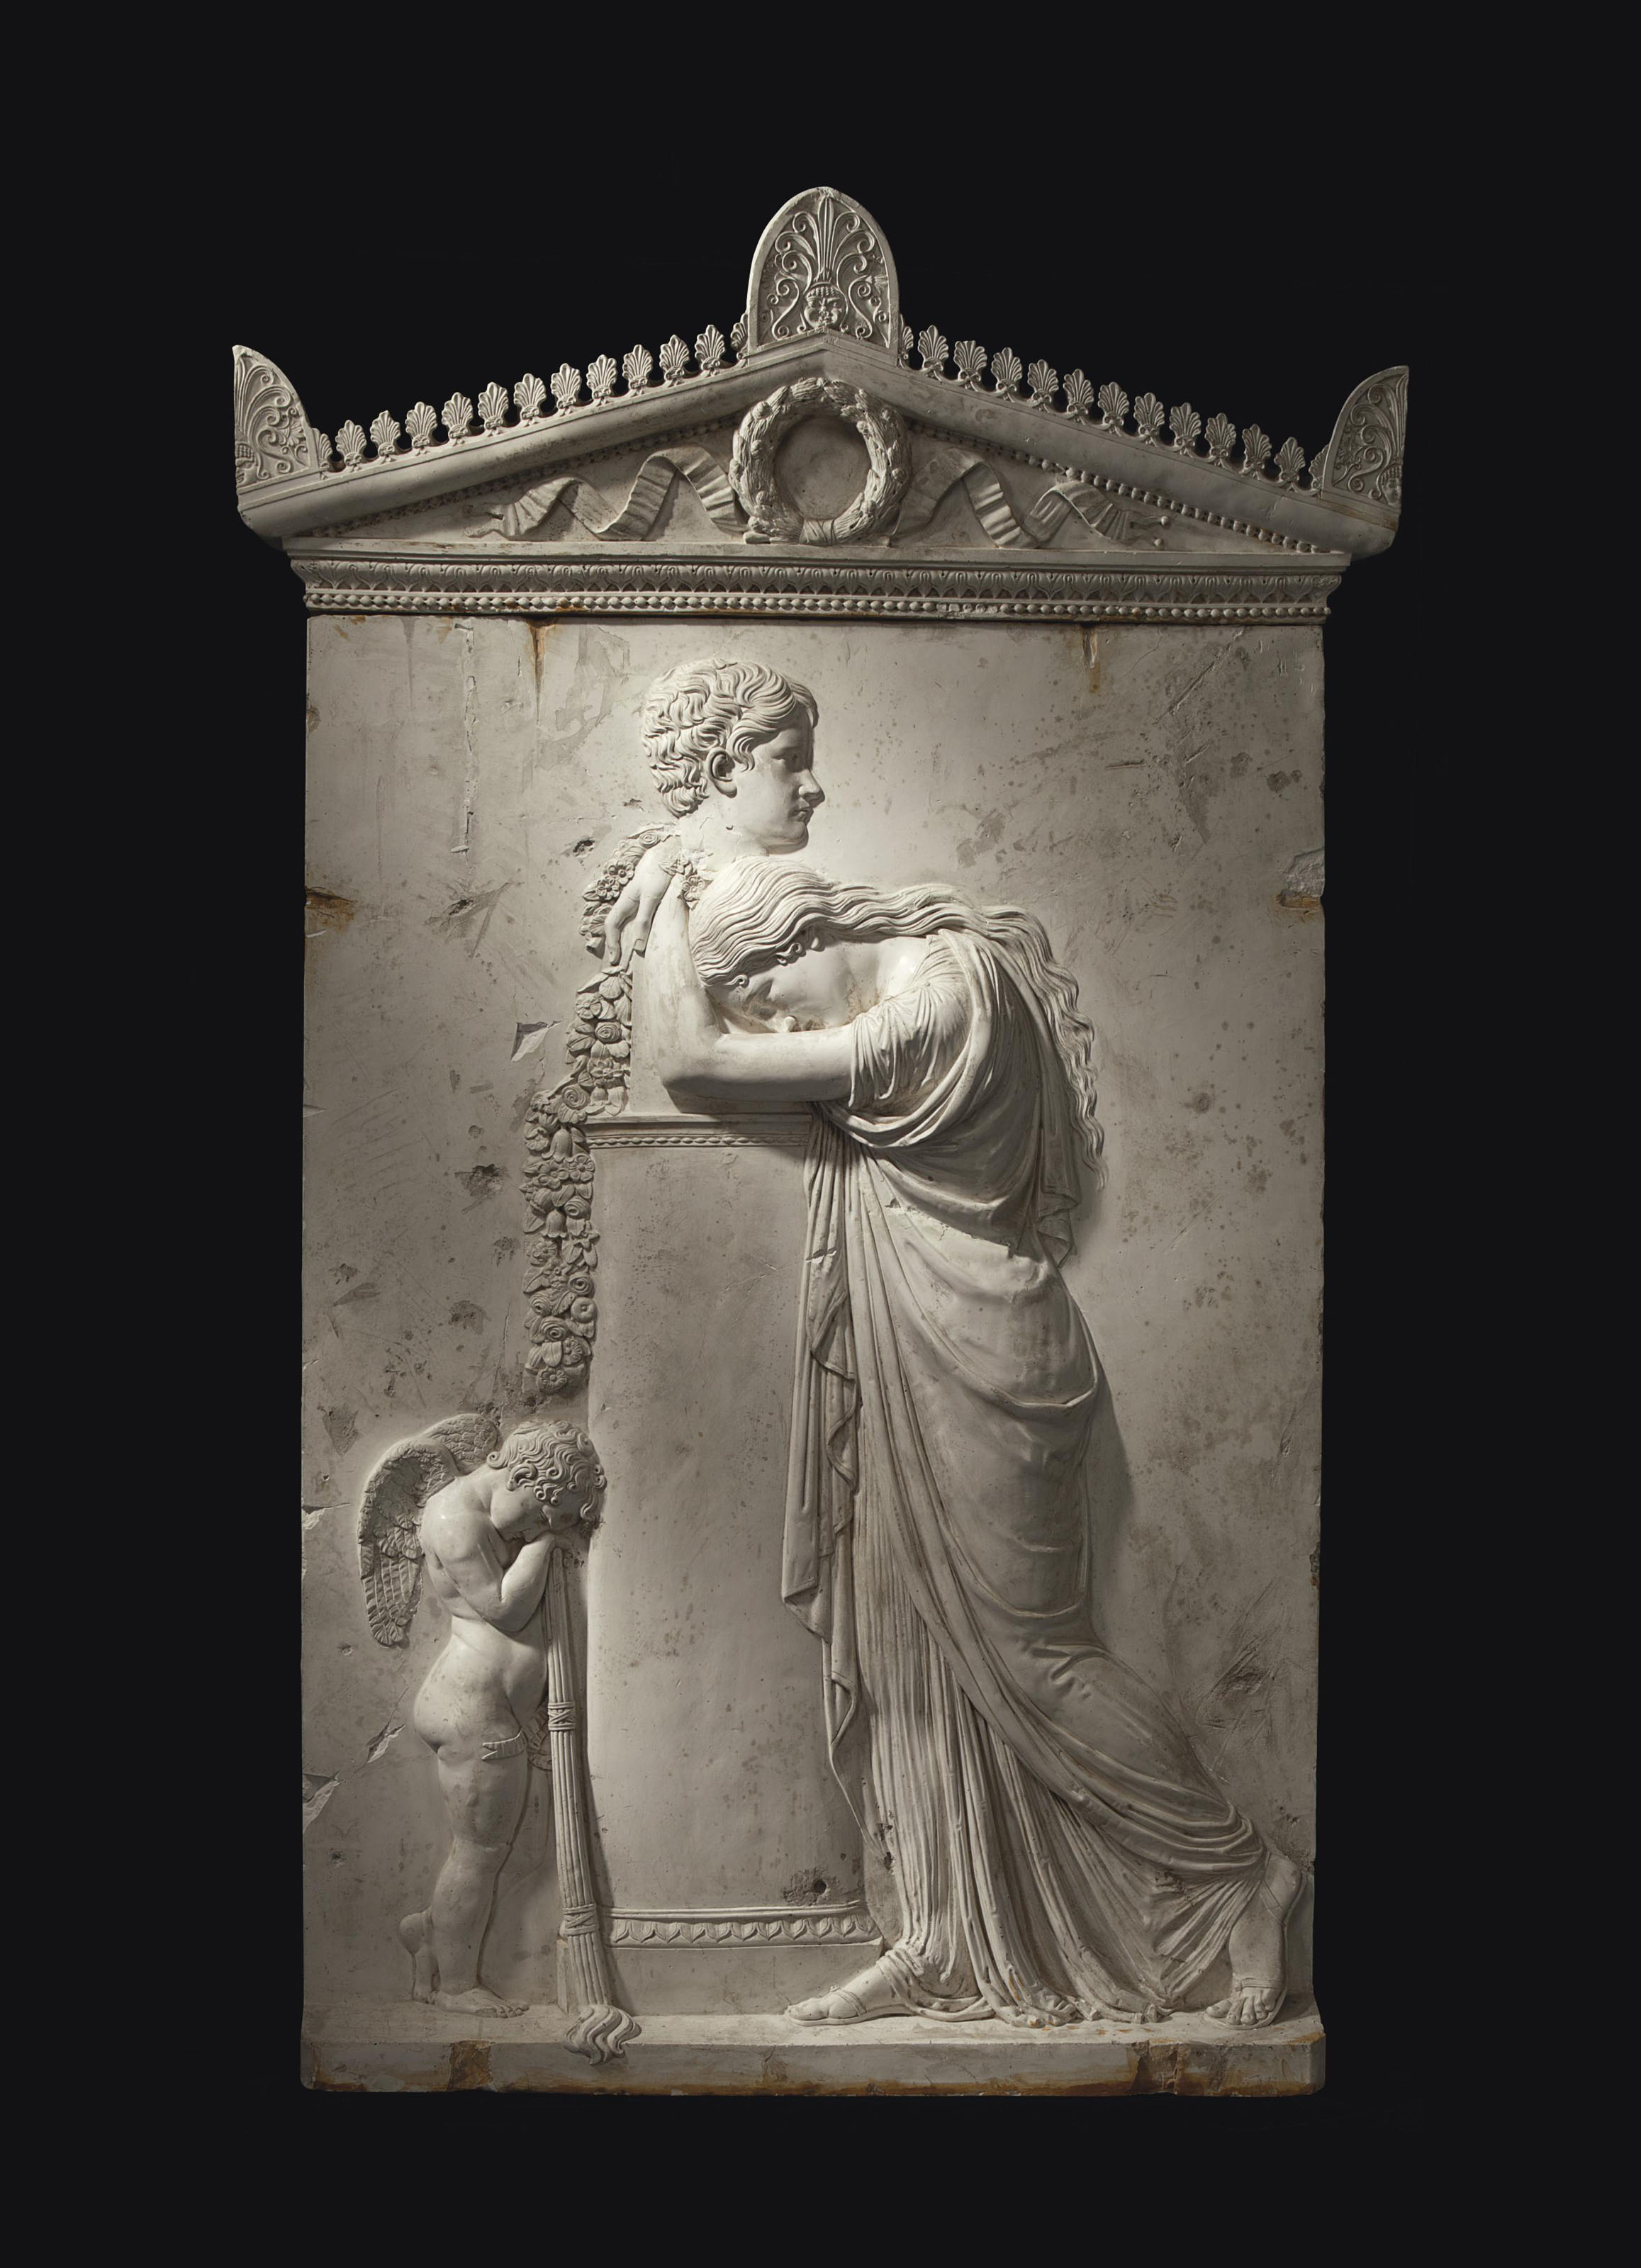 Rinaldo Rinaldi (Padua 1793-1873), after the design by Antonio Canova (1757-1822)